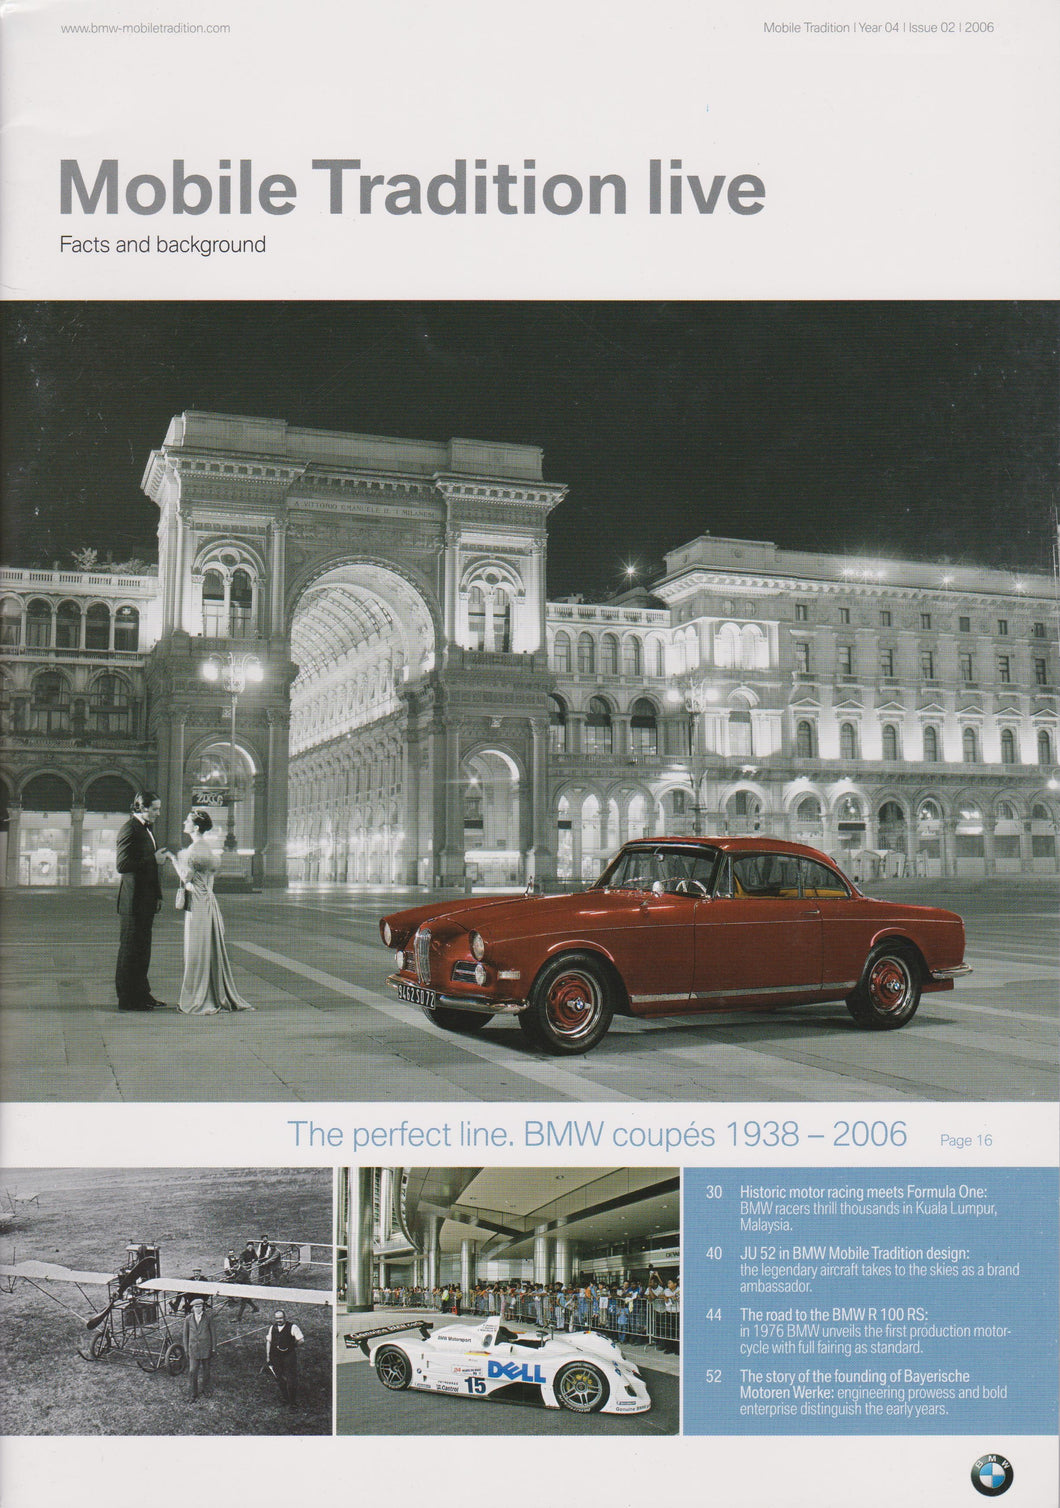 Magazine - Mobile Tradition Live / Issue 02 / 2006